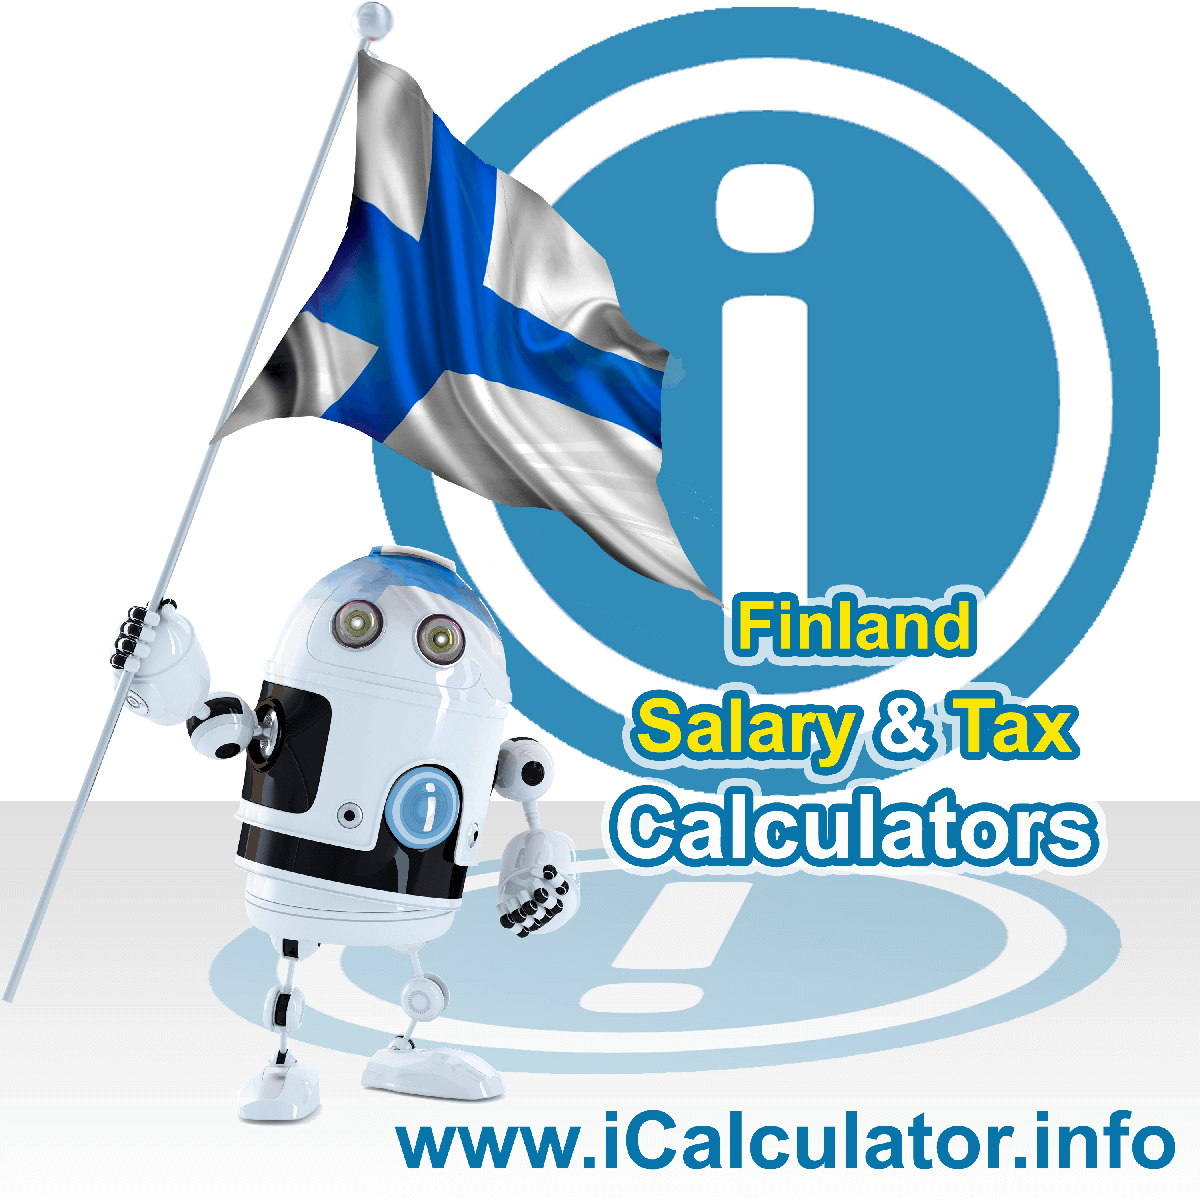 Finland Salary Calculator. This image shows the Finlandese flag and information relating to the tax formula for the Finland Tax Calculator